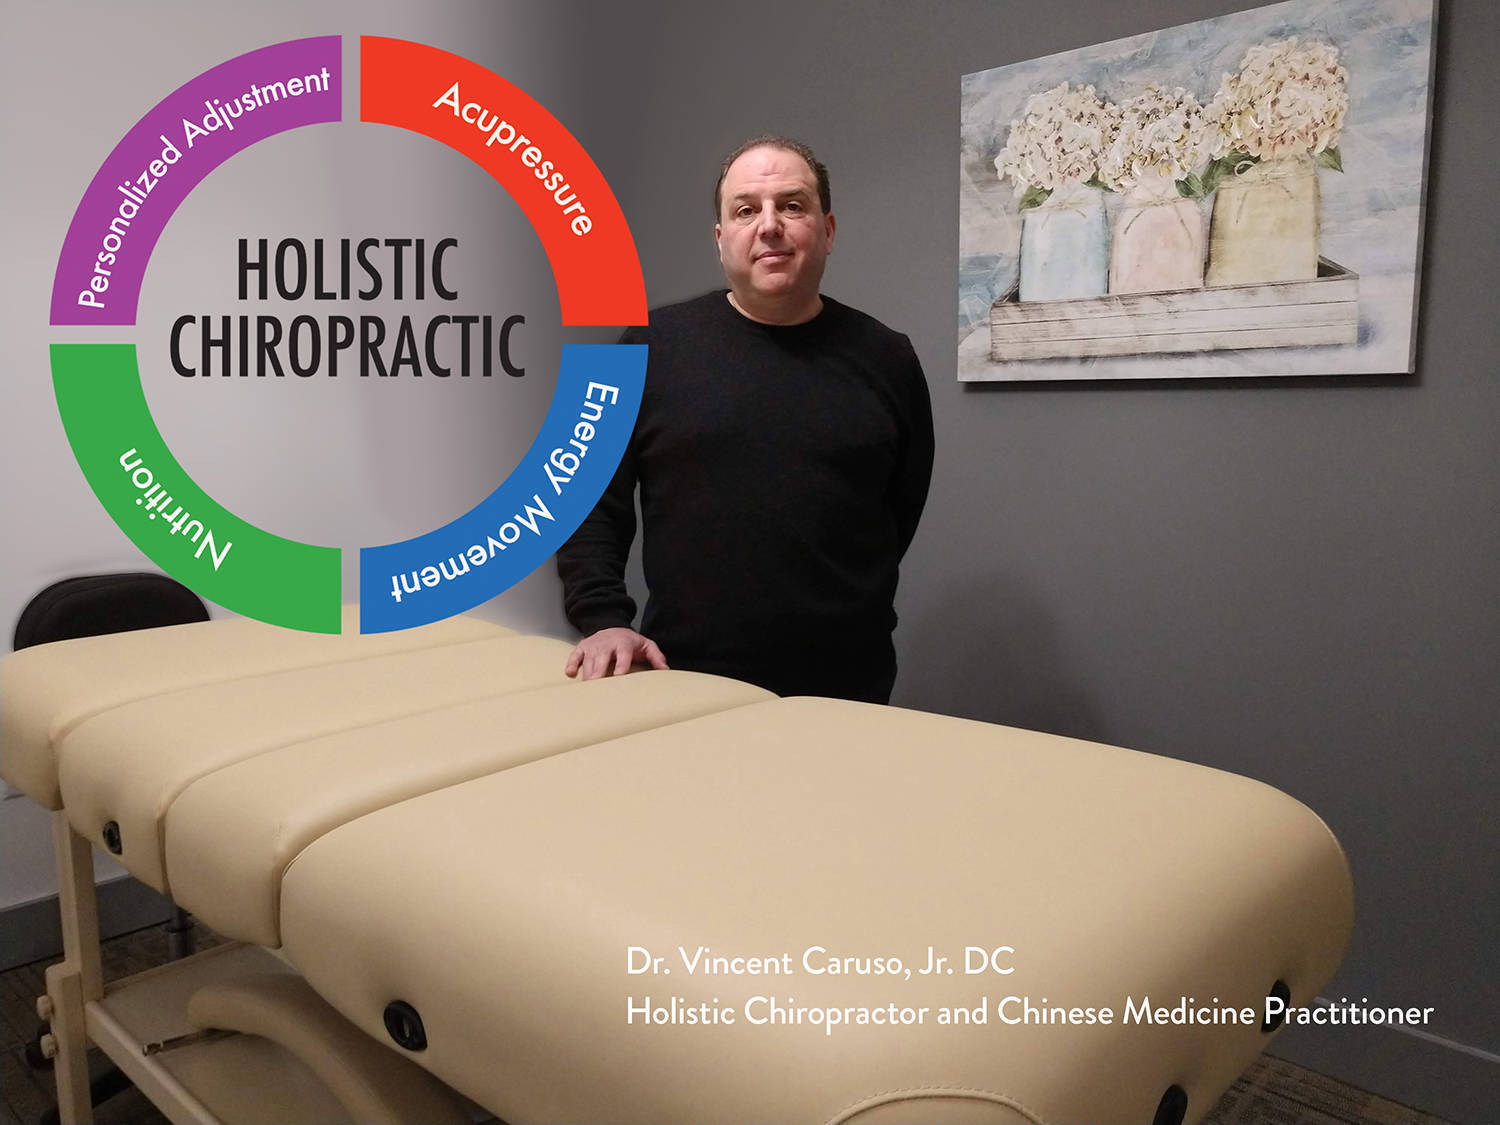 Dr. Vincent Caruso, Holistic Chiropractor